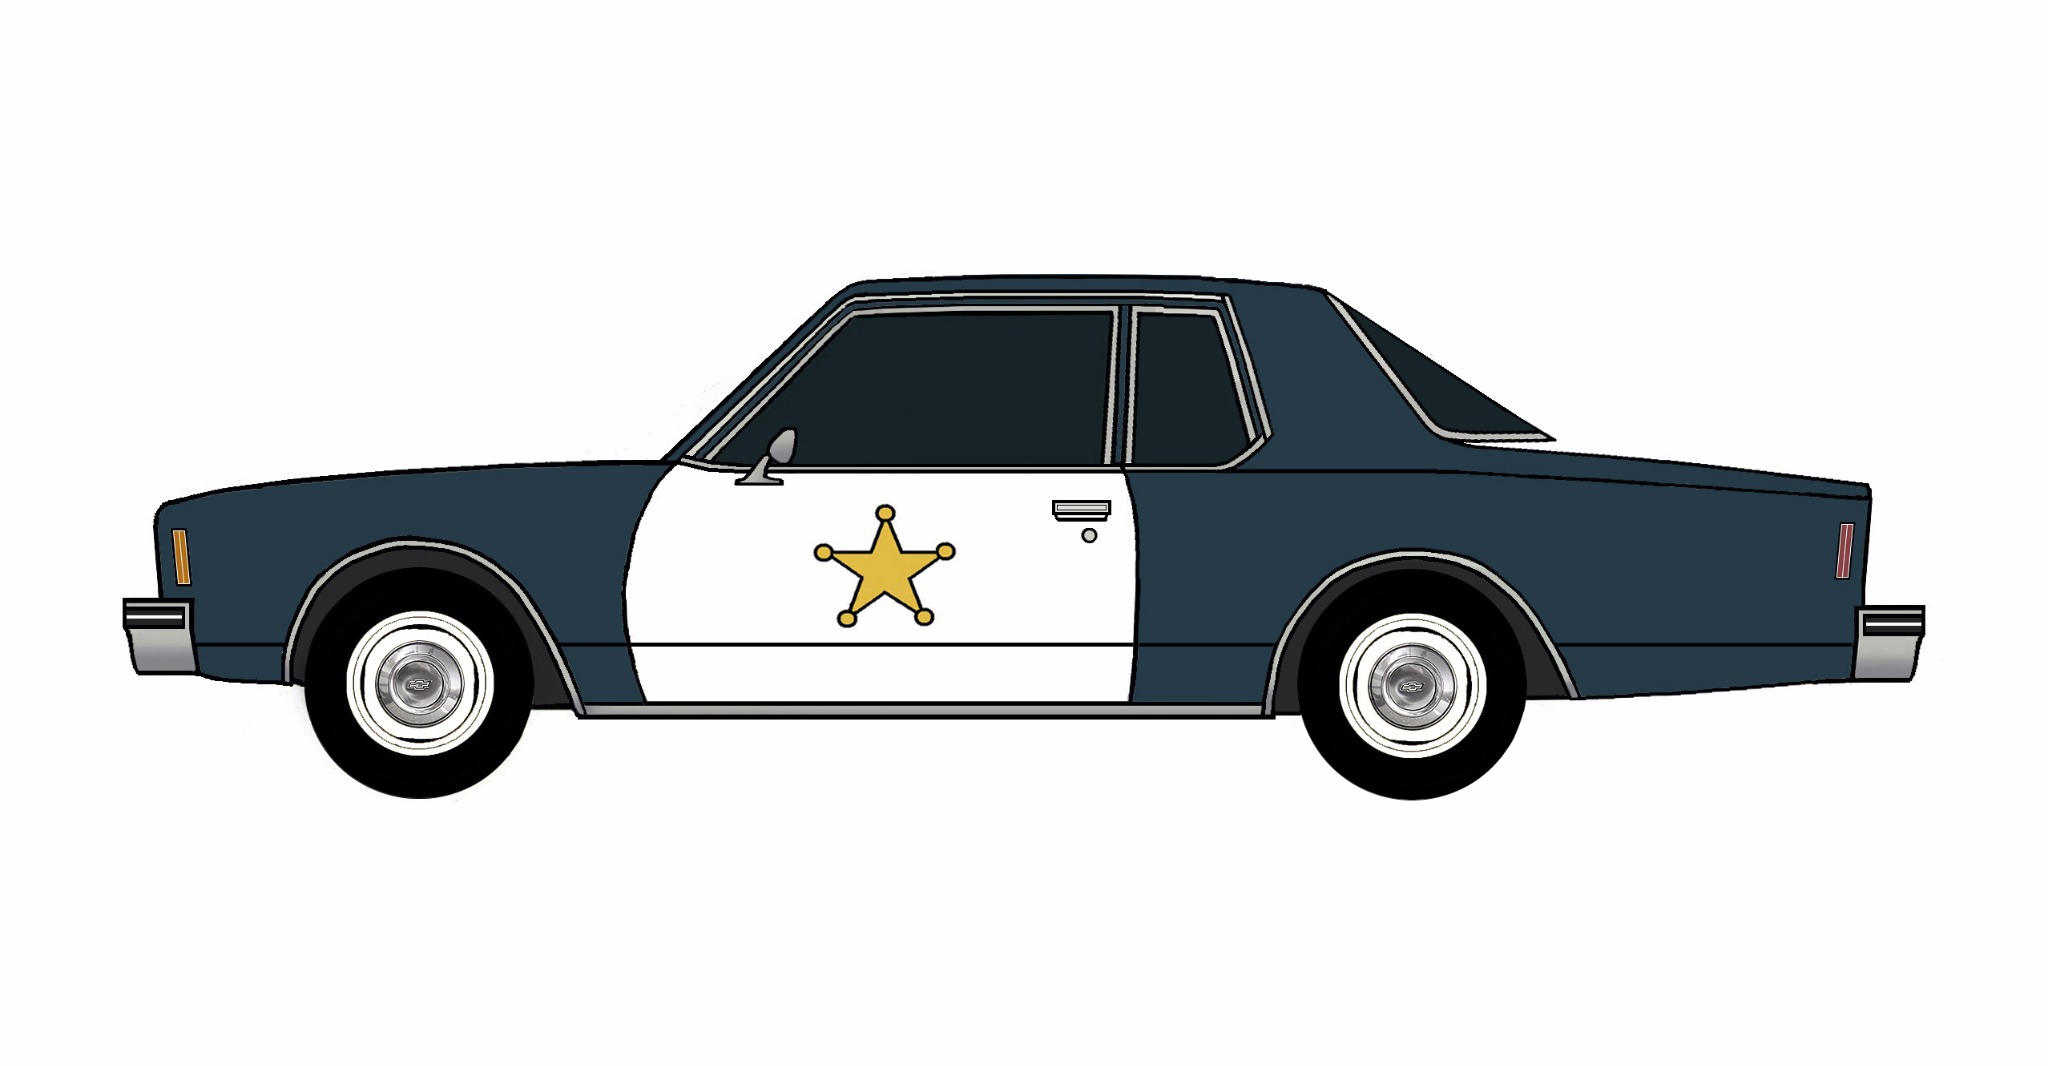 1978 Chevy Impala Police Coupe NAVY BLUE